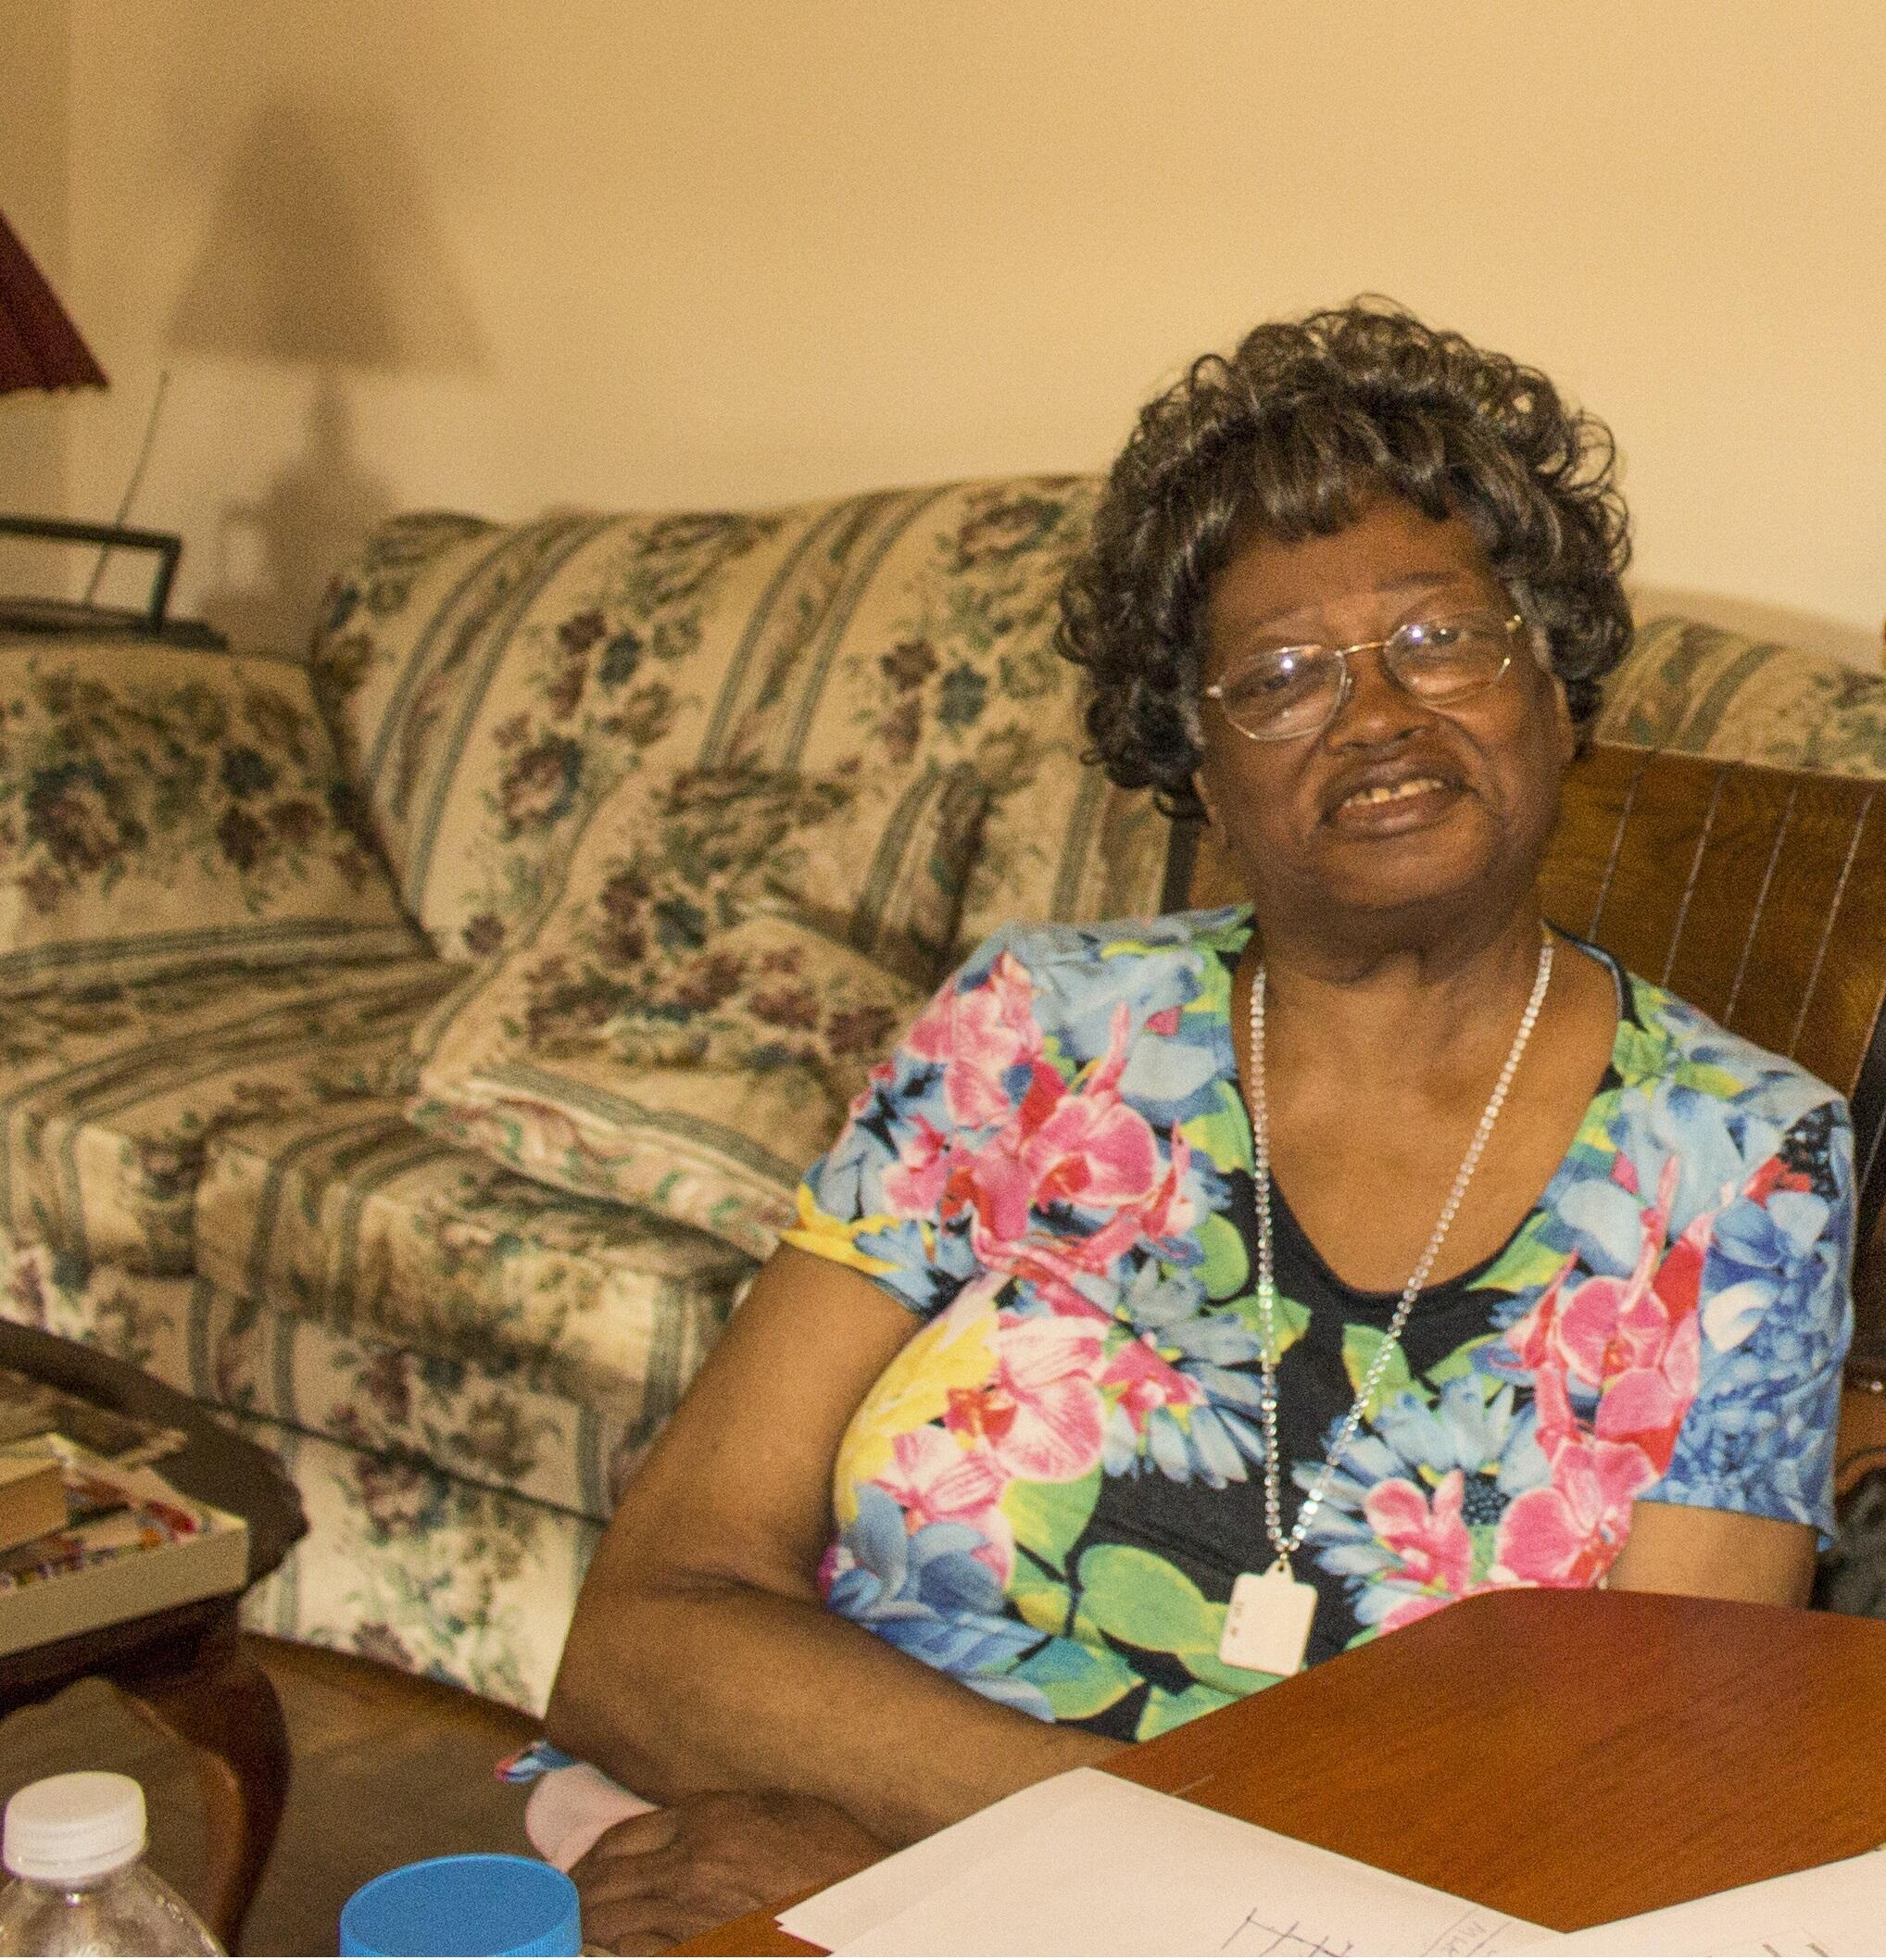 Claudette Colvin seated in her home, Bronx, New York